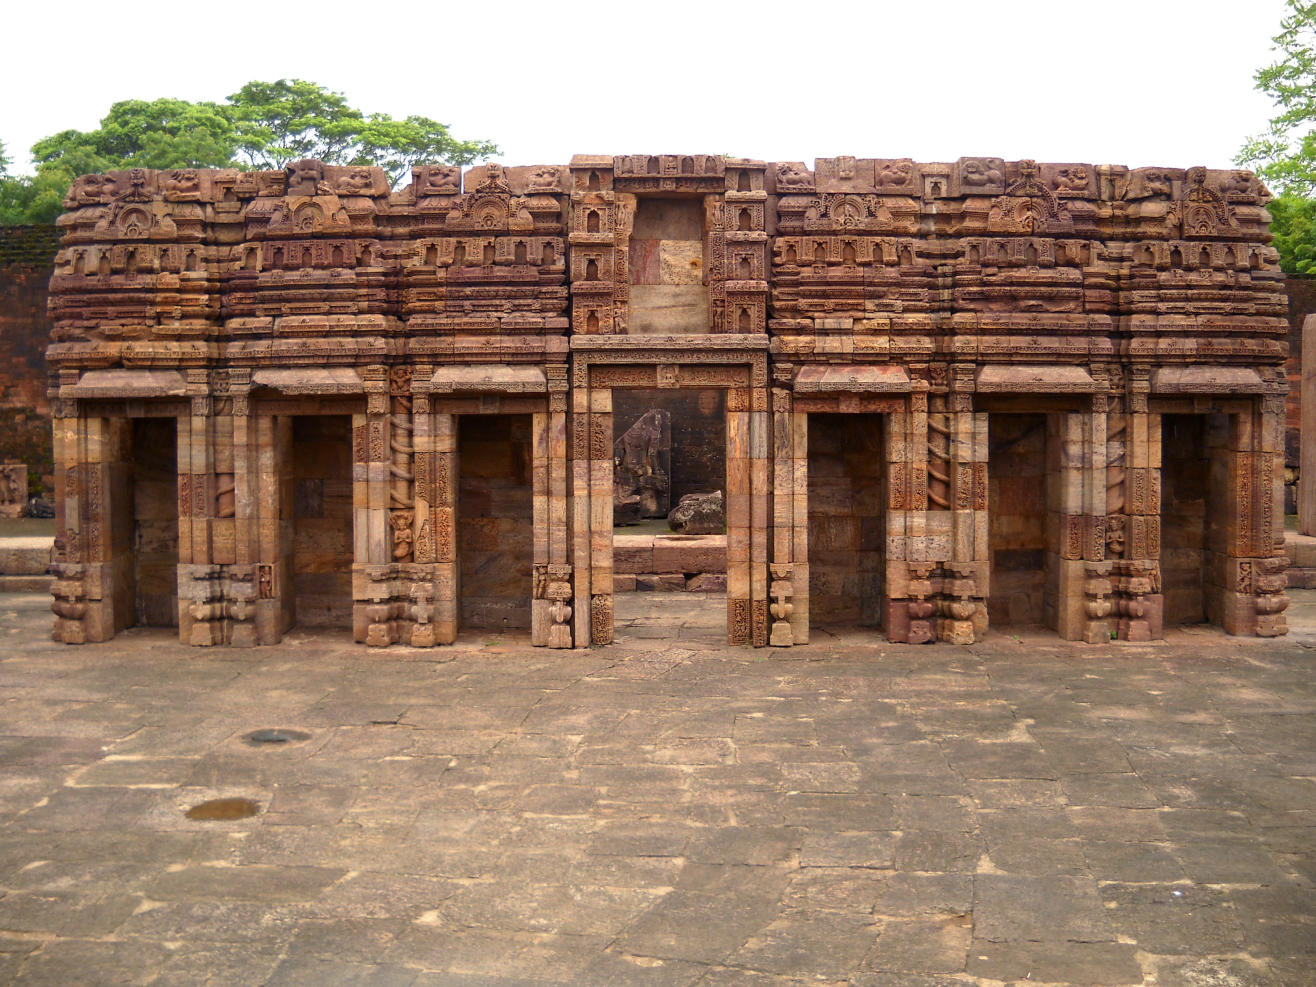 The Hill Containing Many Valuable Sculptures and Images, Ratnagiri